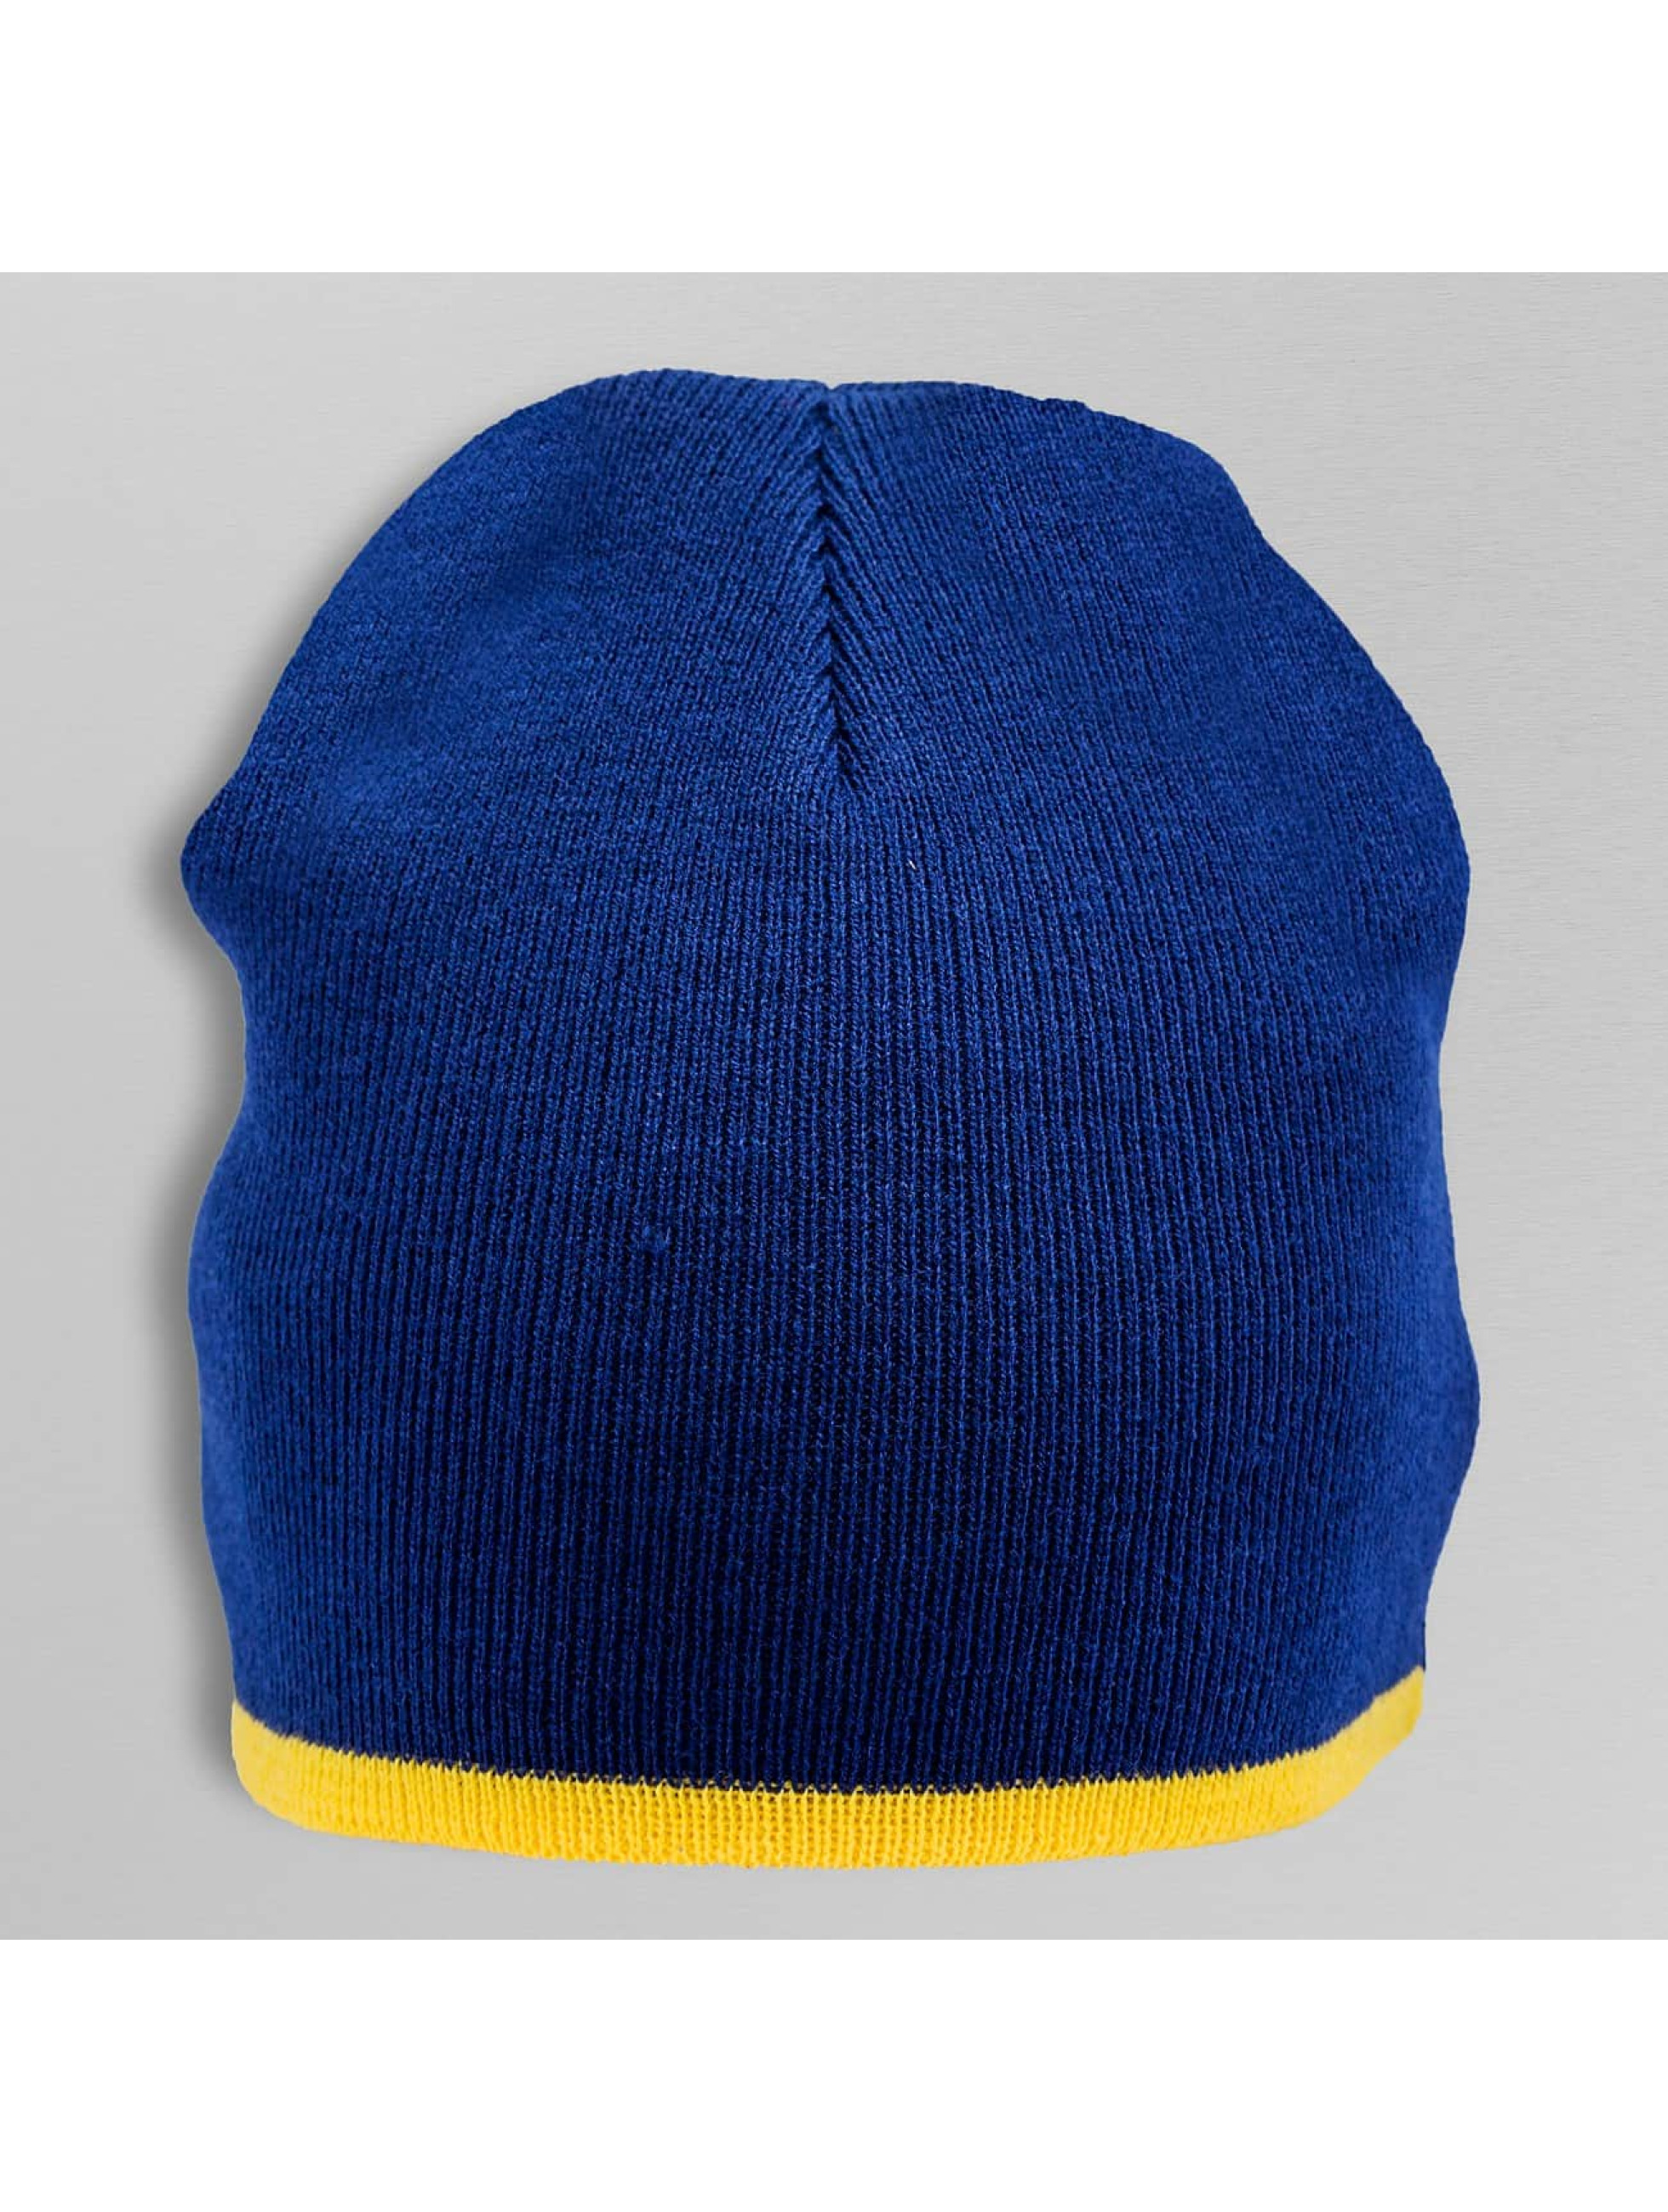 Cap Crony Männer,Frauen Beanie Single Striped in blau